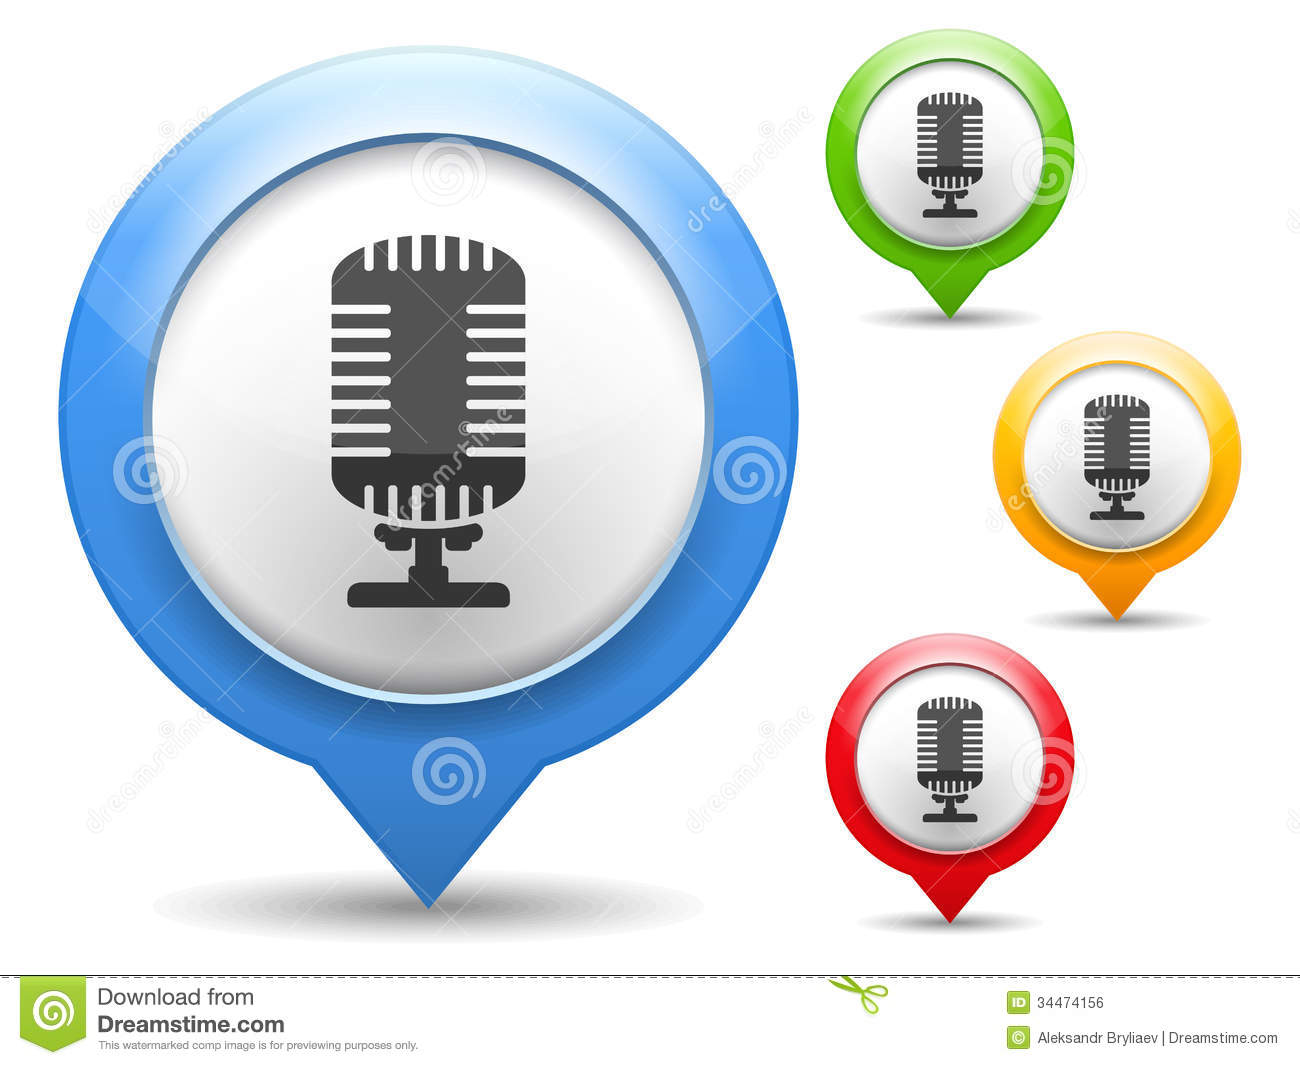 Microphone Icon stock vector. Illustration of button - 34474156